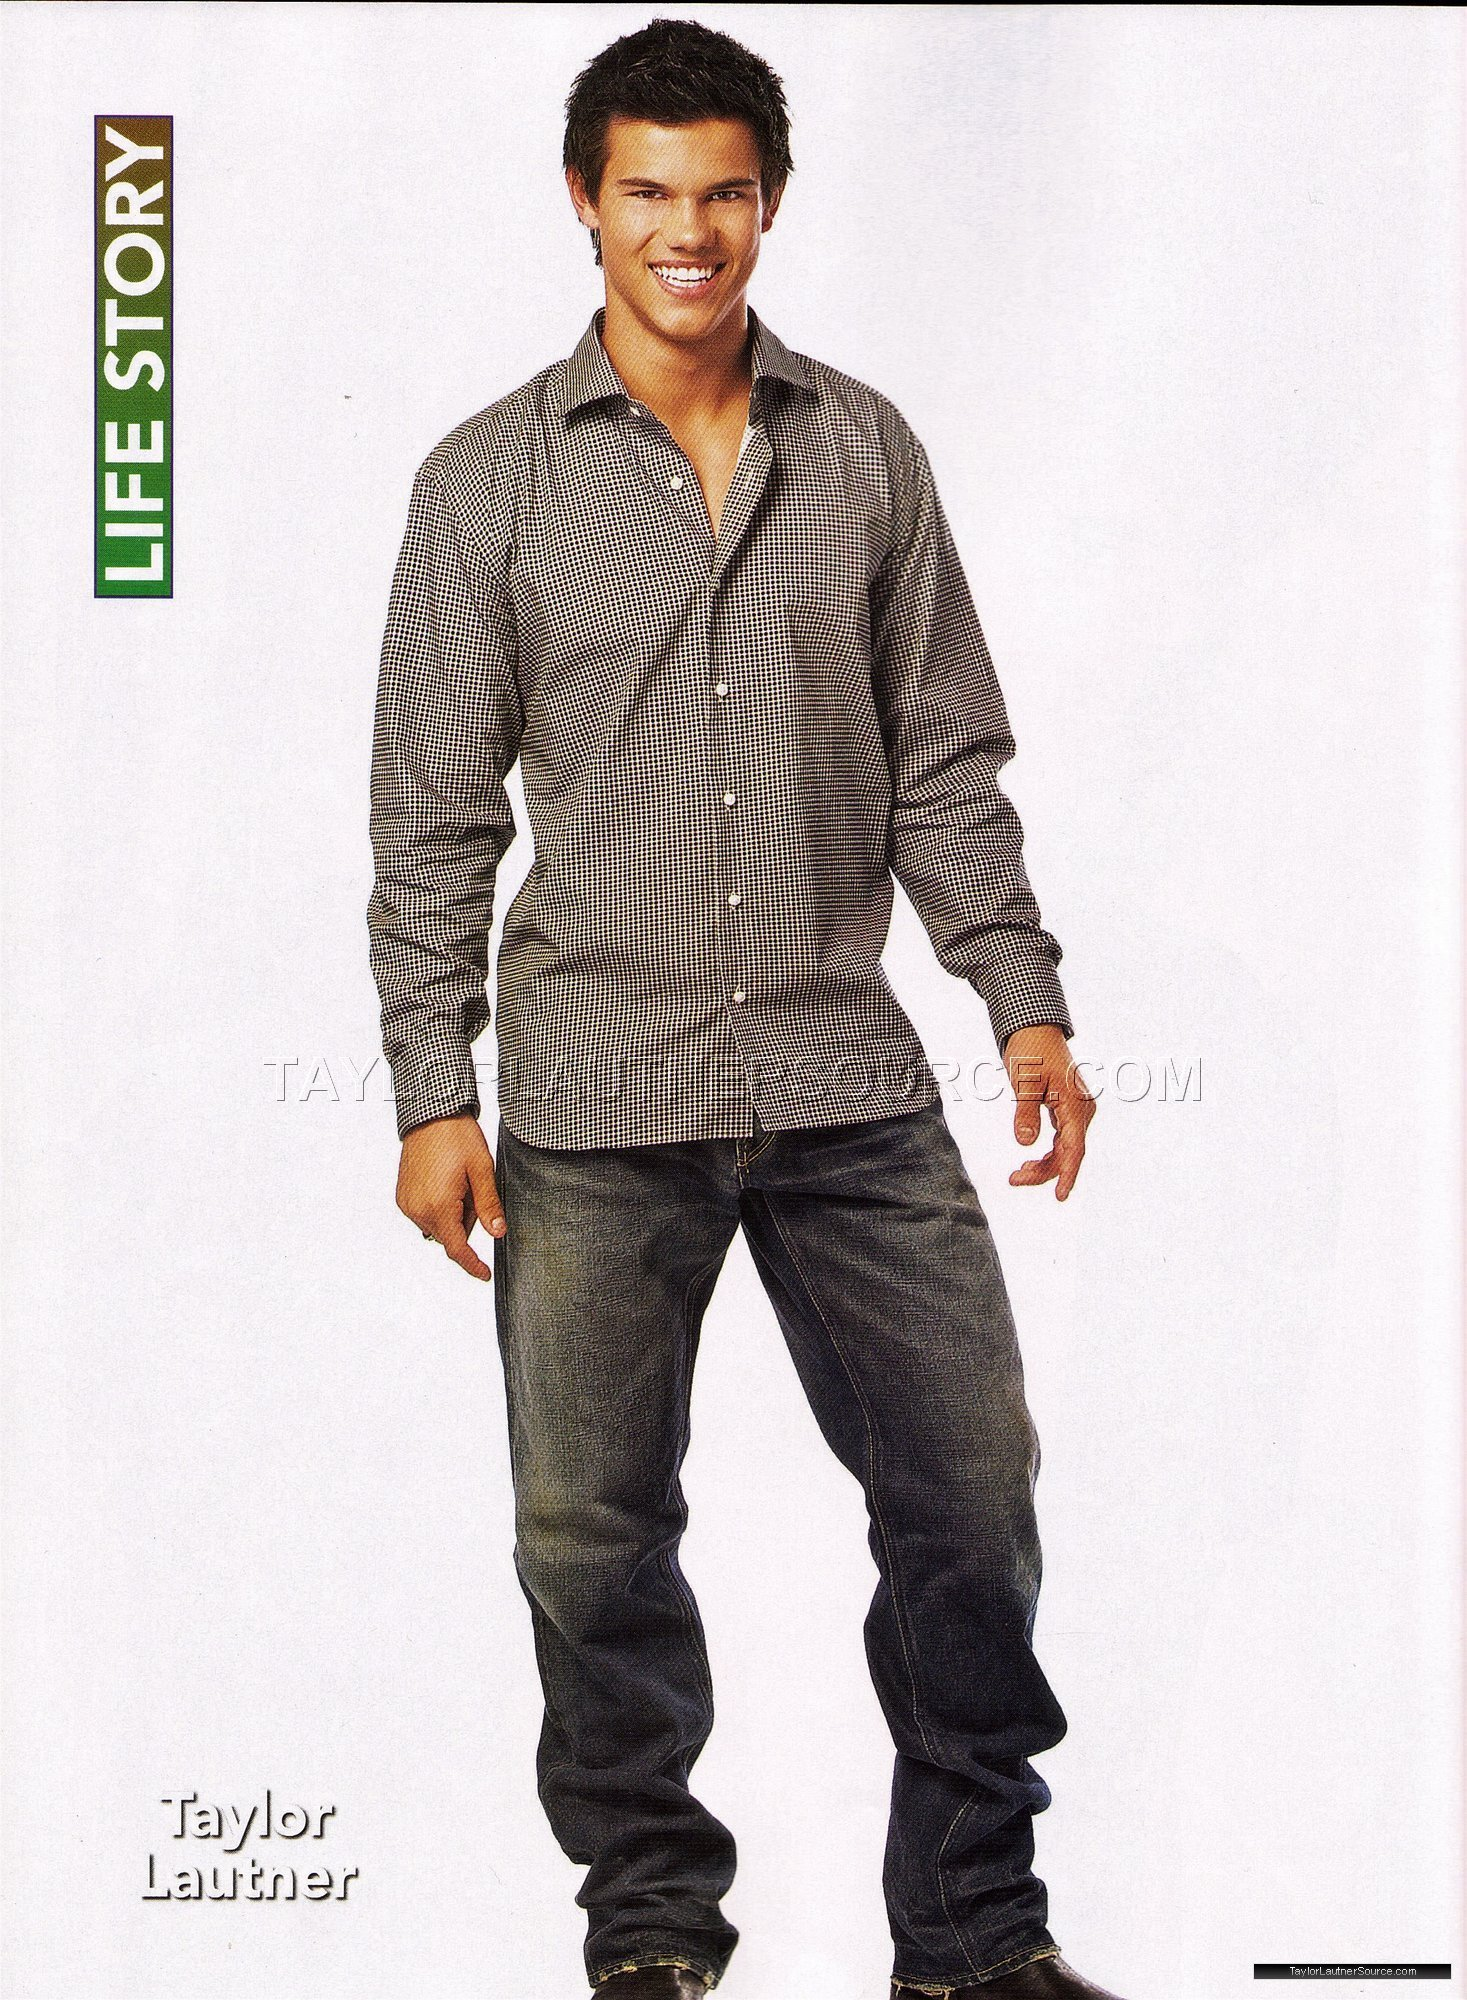 Taylor In Life Story Magazine Lautner